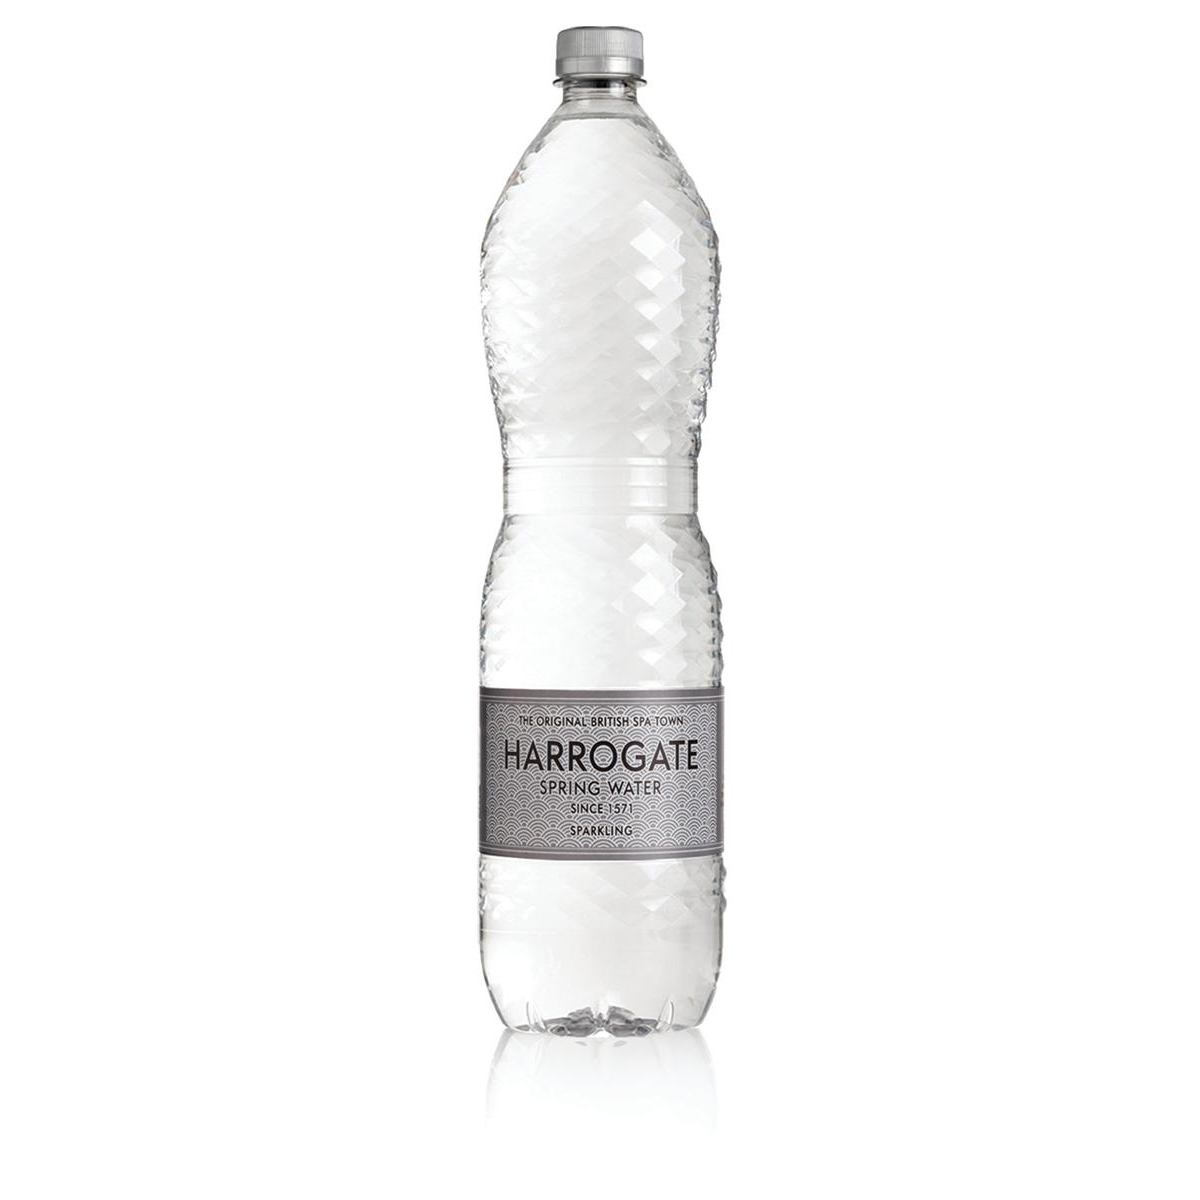 Harrogate Sparkling Water Plastic Bottle 1.5 litres Ref P150122C Pack 12